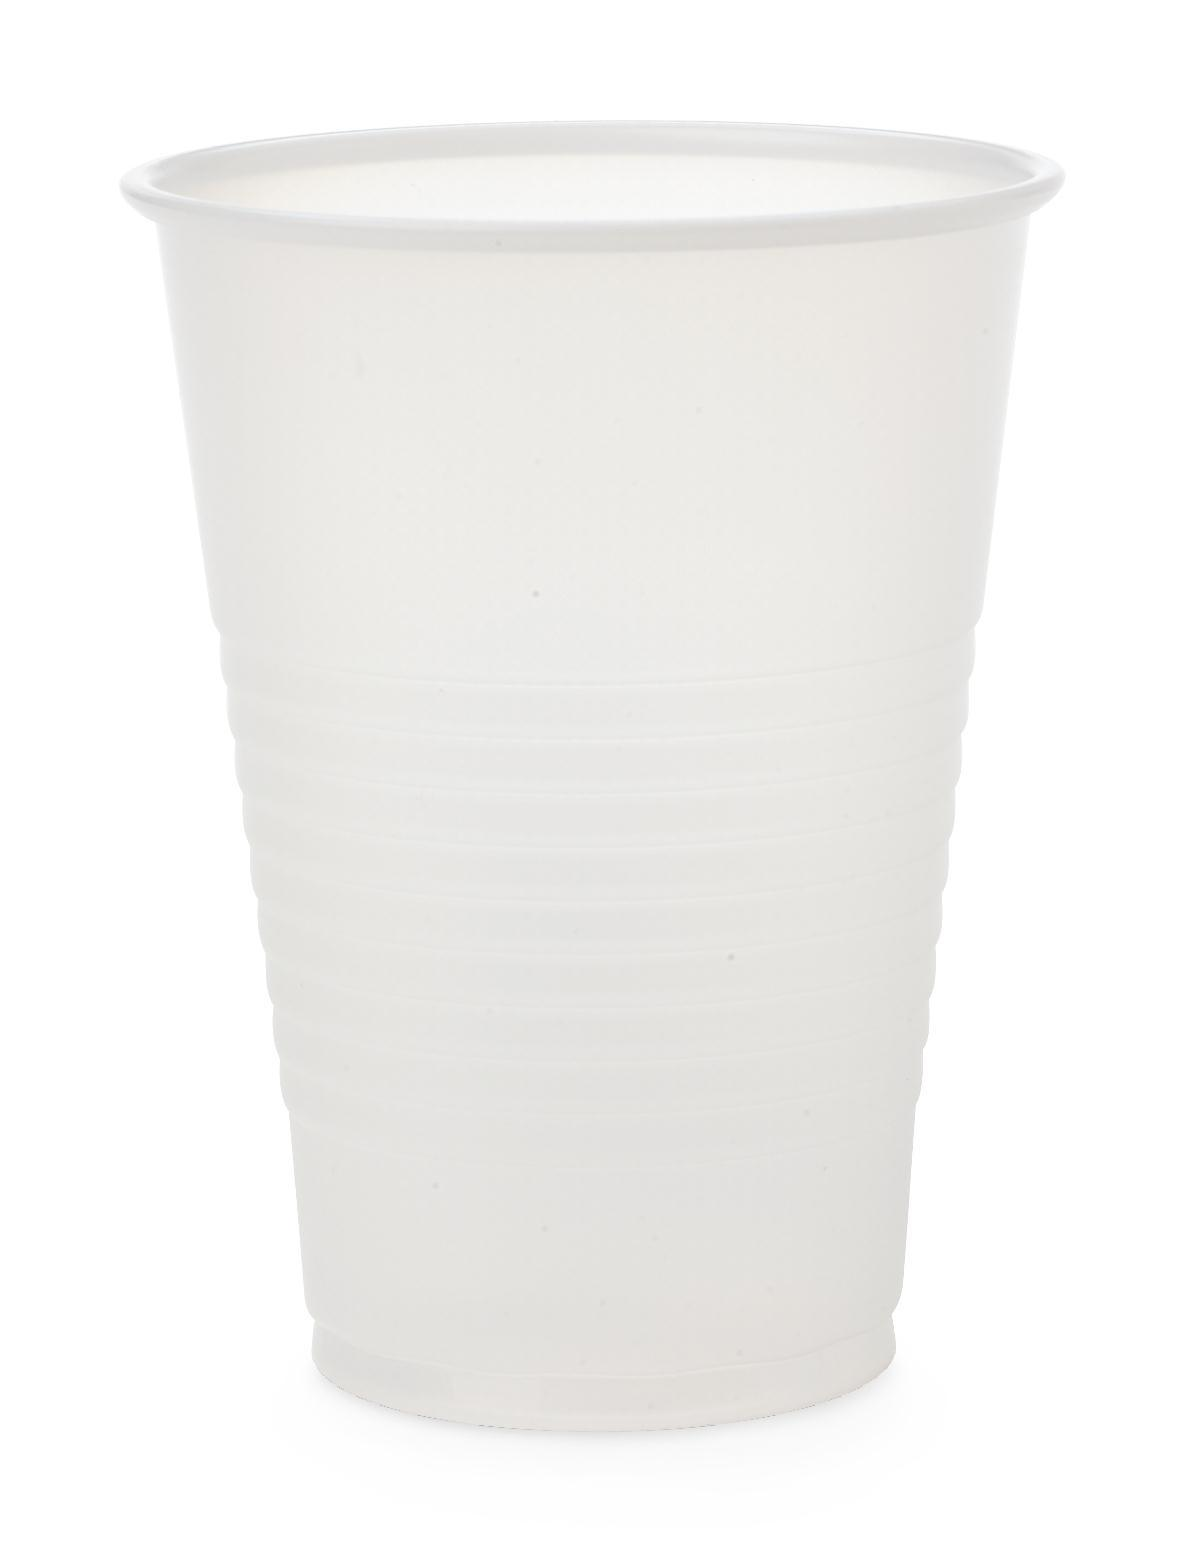 Translucent Plastic Cups Plastic NON03007 Medline